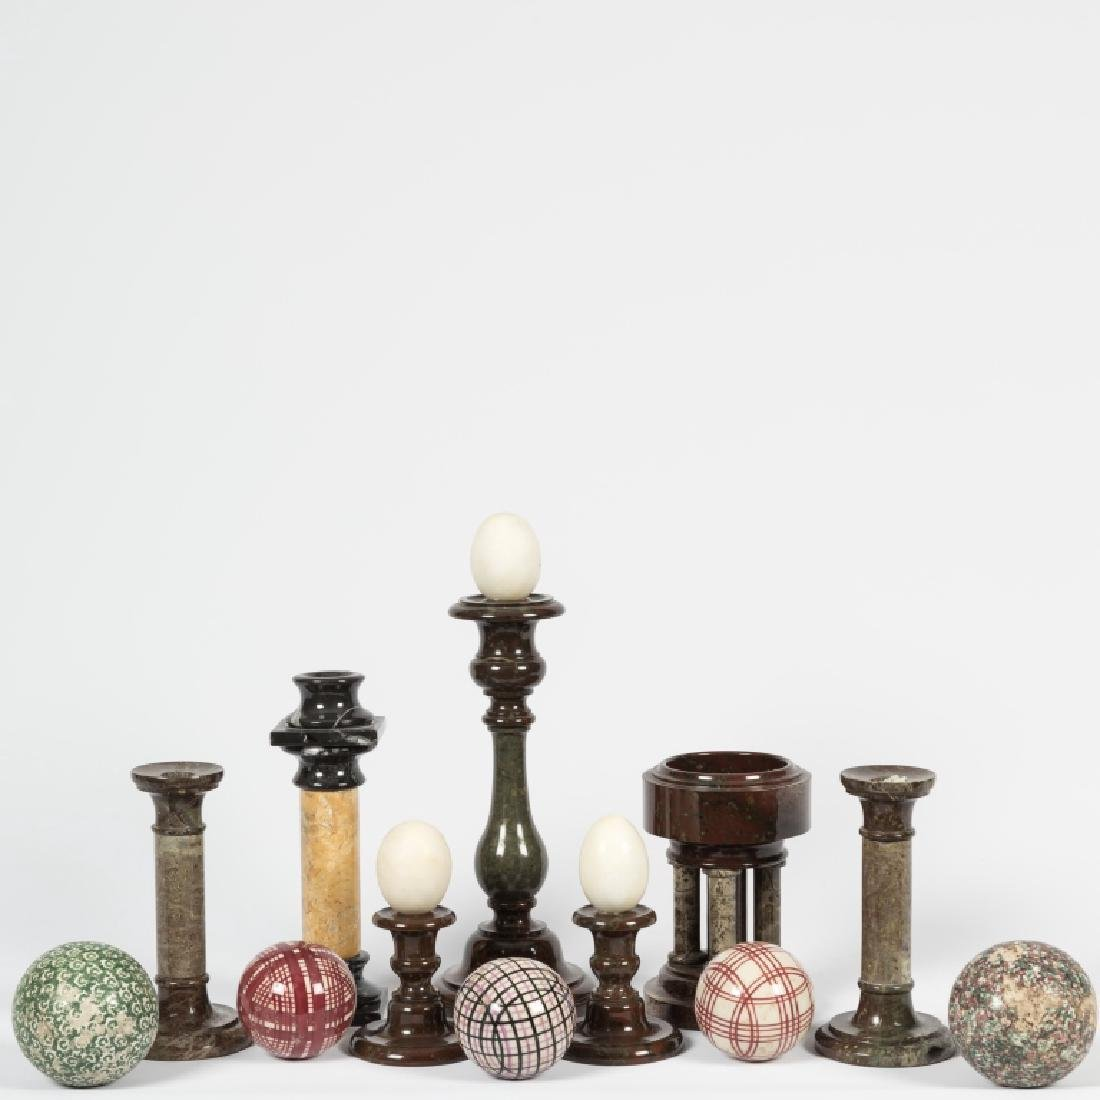 Group Marble Candlesticks and Carpet Balls